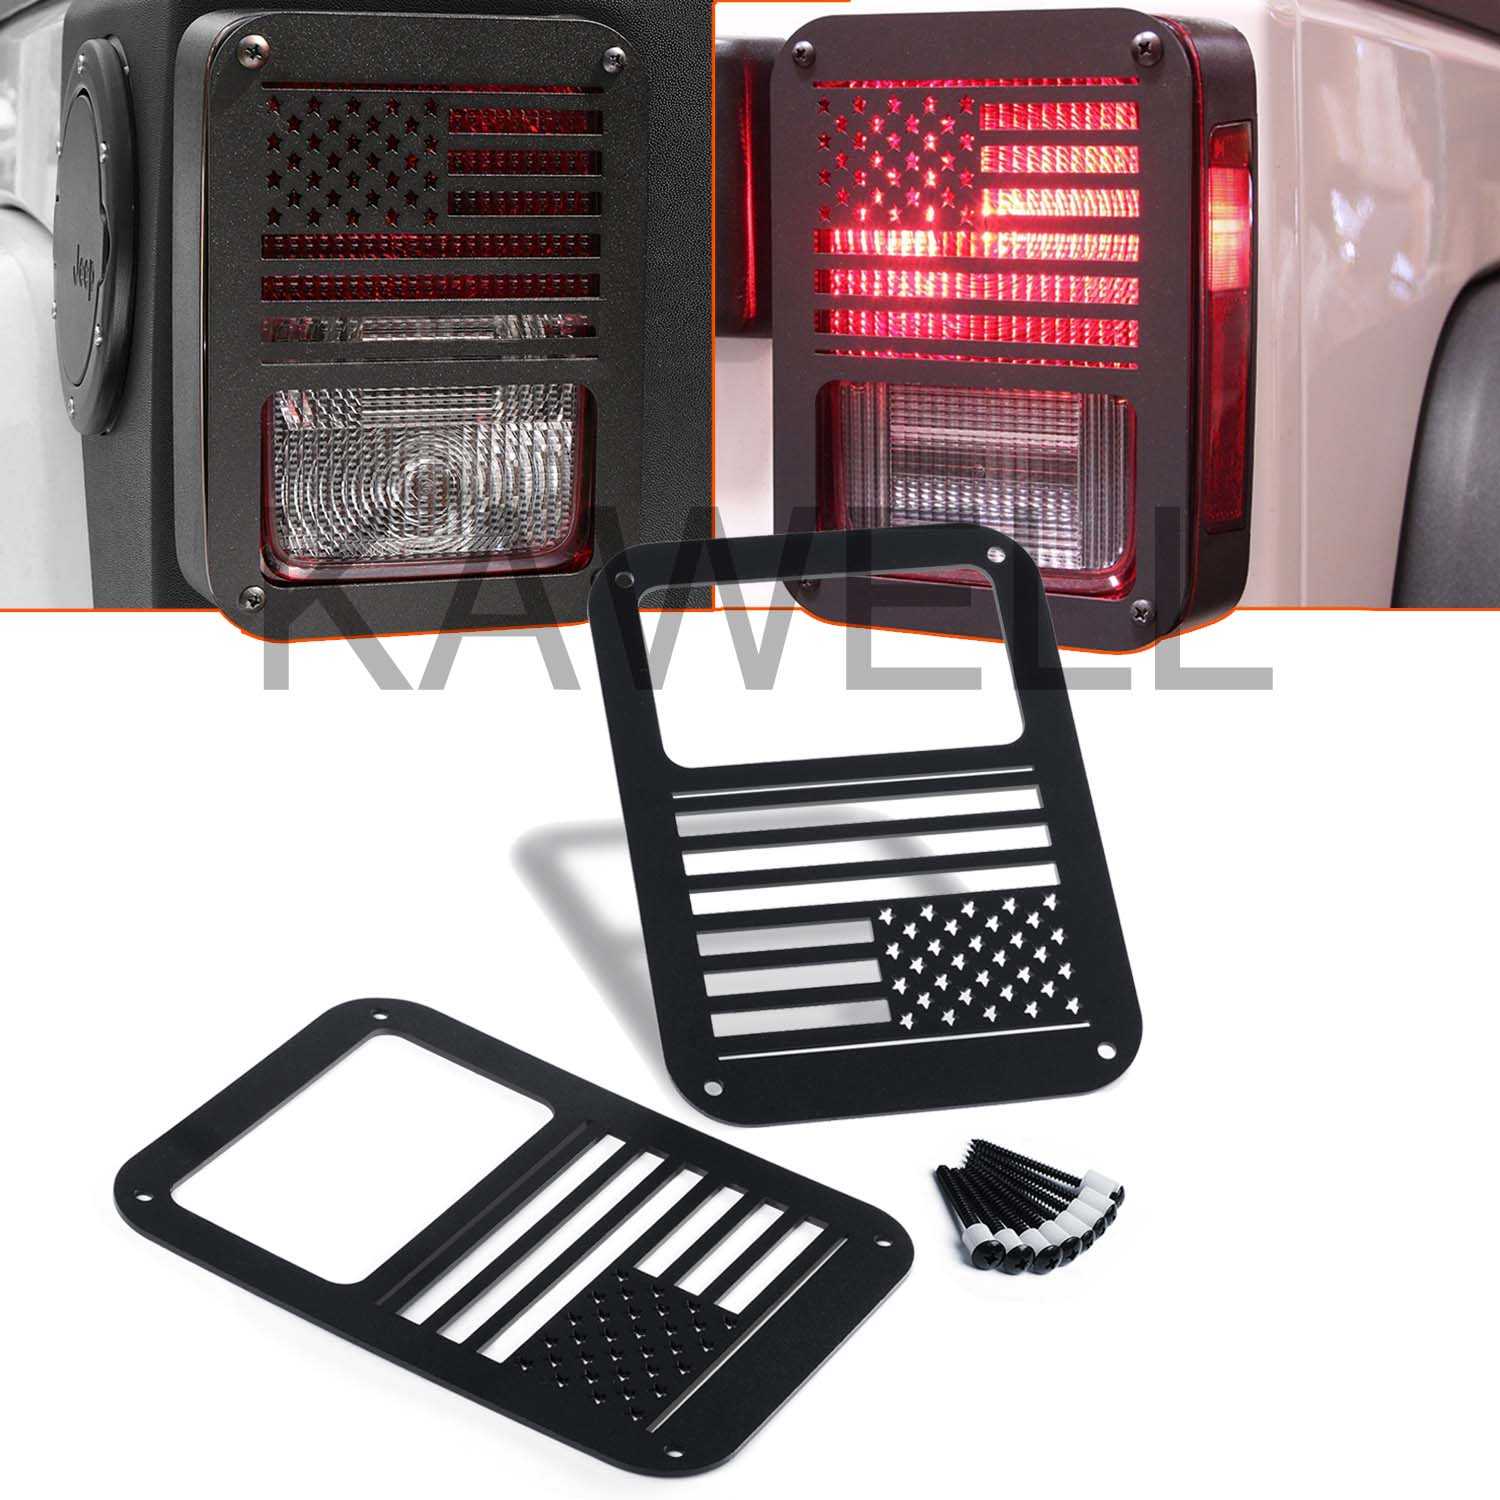 KAWELL 2 Pcs Rear Tail lamp Tail light Cover Trim Guards Protector for Jeep Wrangler Sport X Sahara Unlimited Rubicon 2007-2016 (USA Flag)